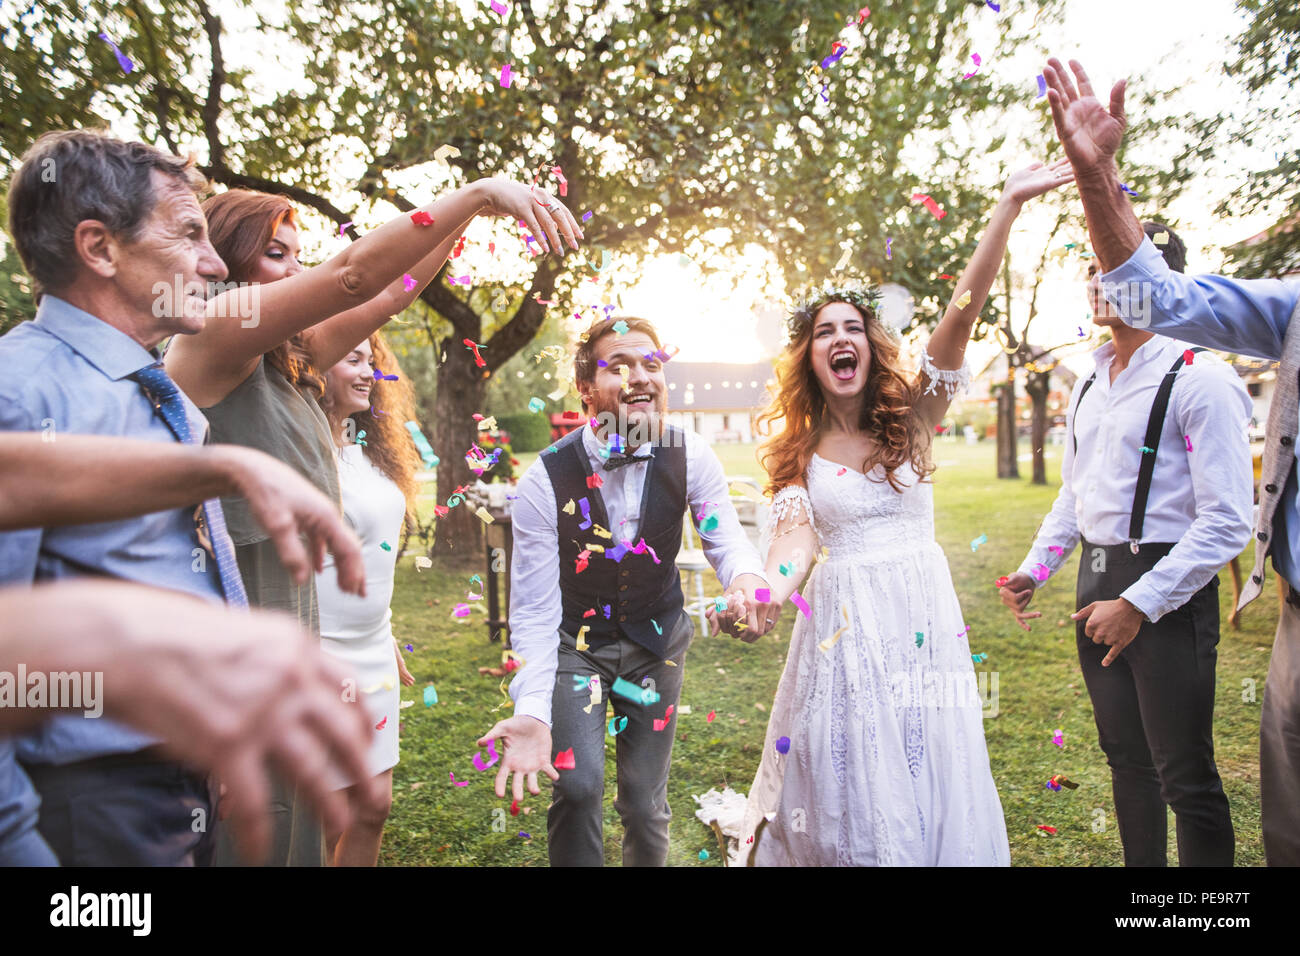 Bride, groom and guests throwing confetti at wedding reception outside. - Stock Image